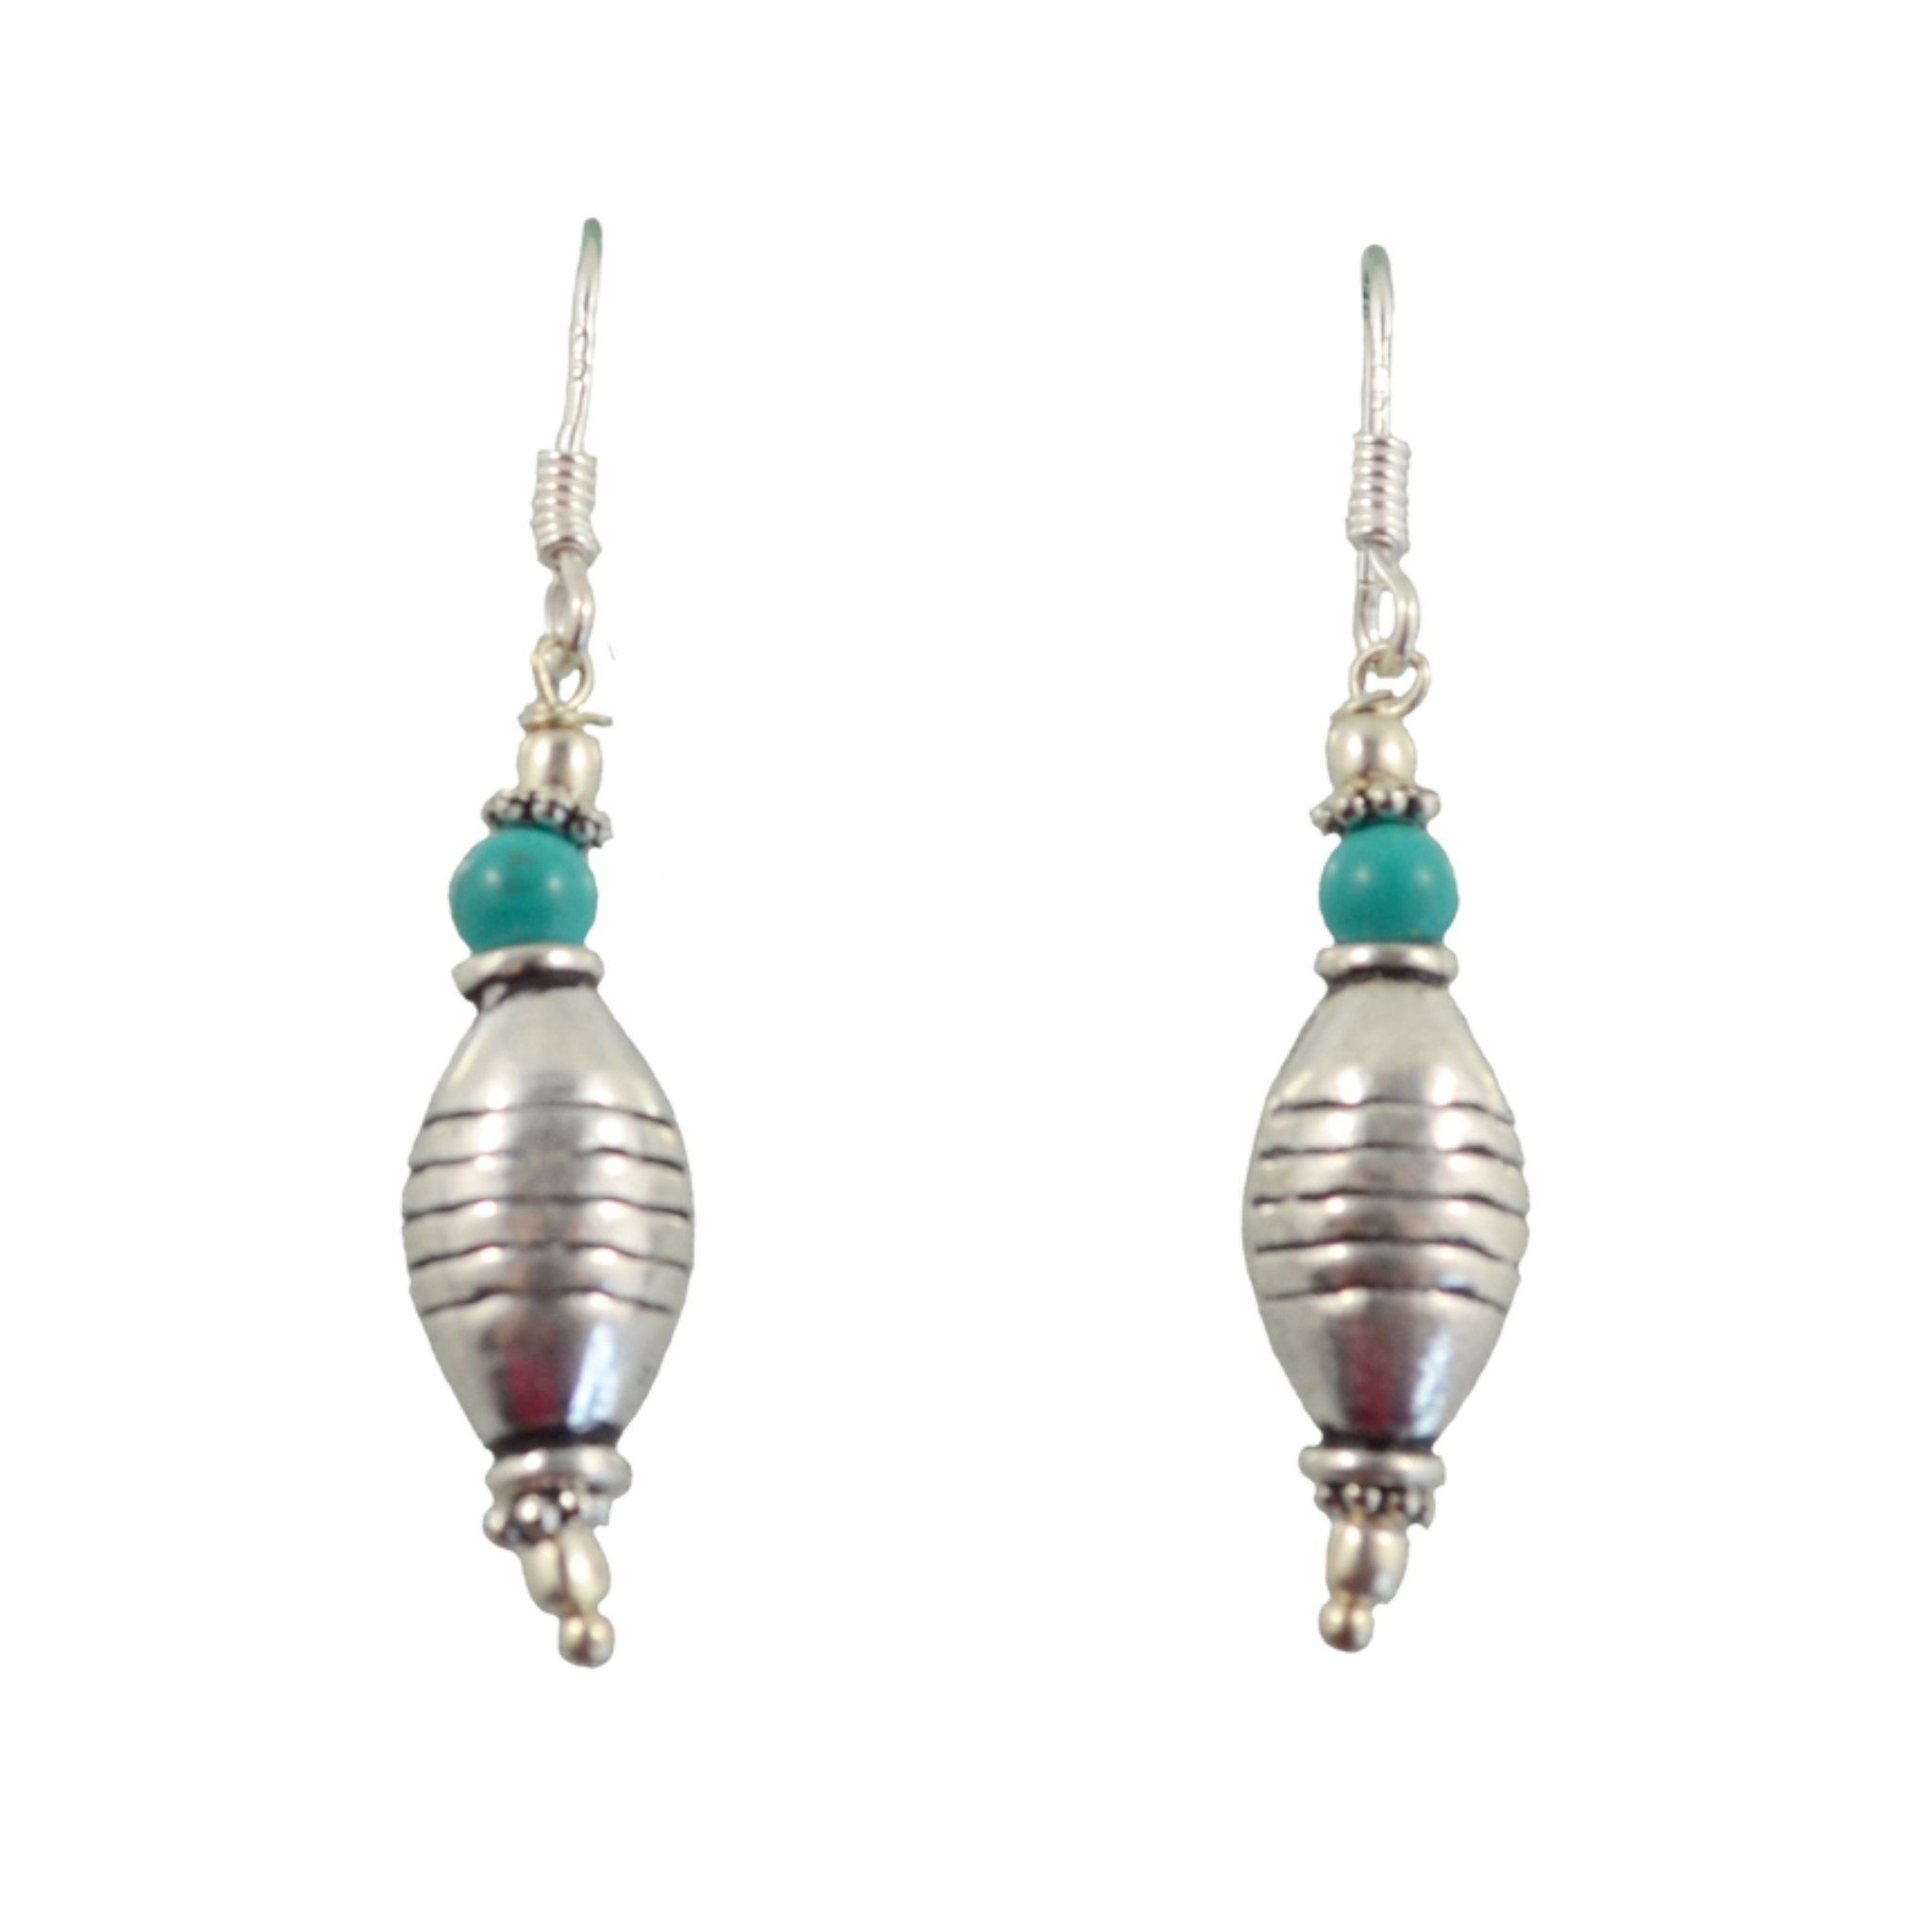 Aqua Swirl Earrings Himal International